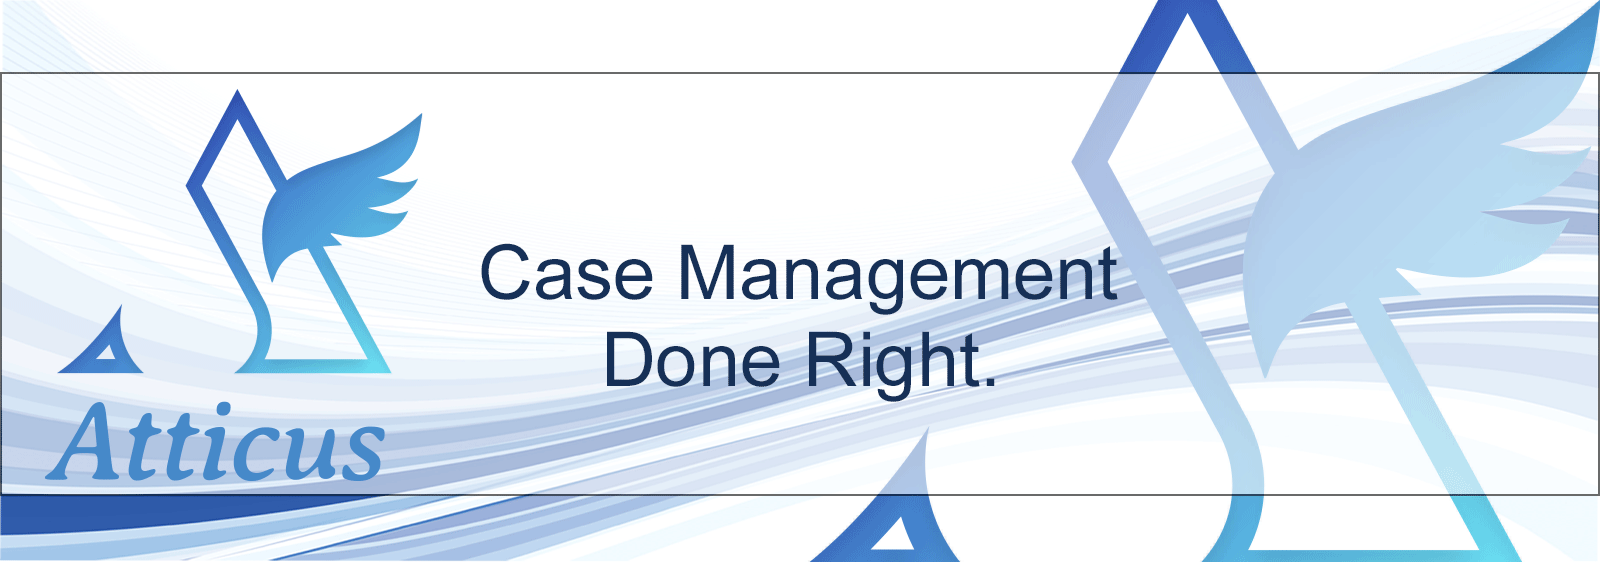 Atticus Case Management System - Case Management Done Right